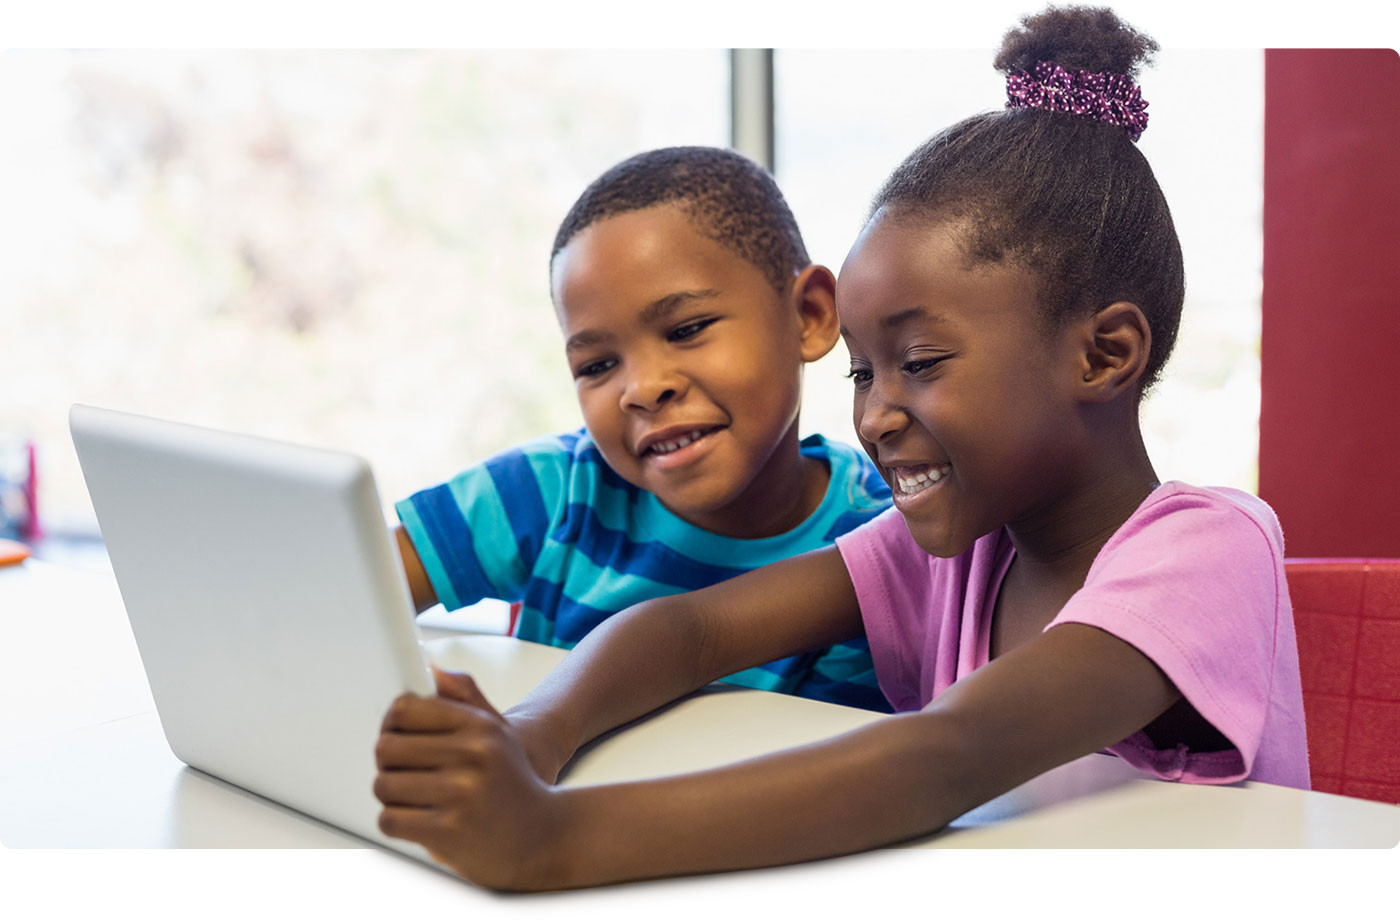 Children reading on laptop